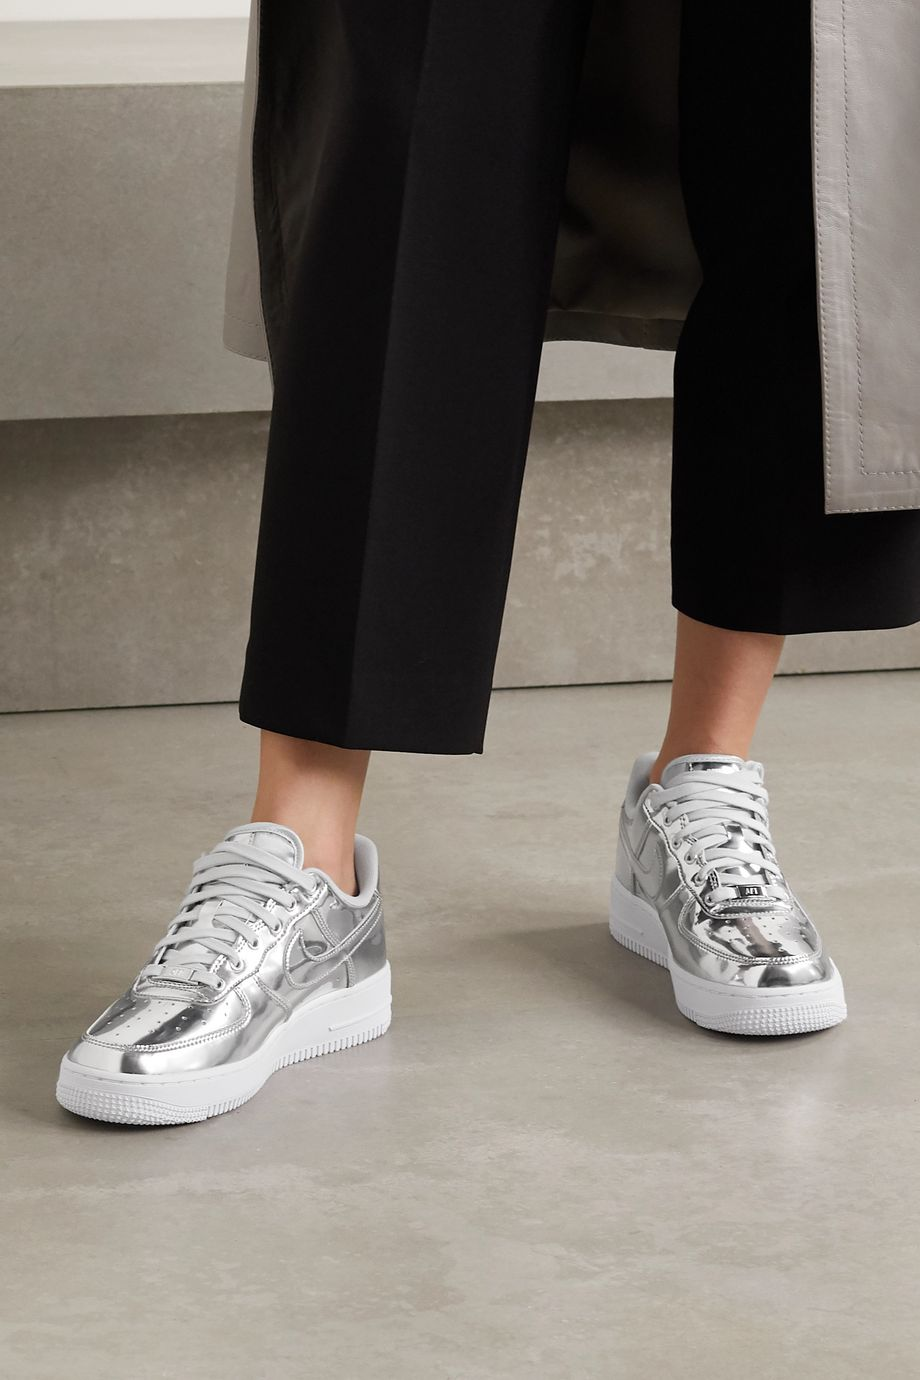 Nike Air Force 1 metallic faux leather sneakers